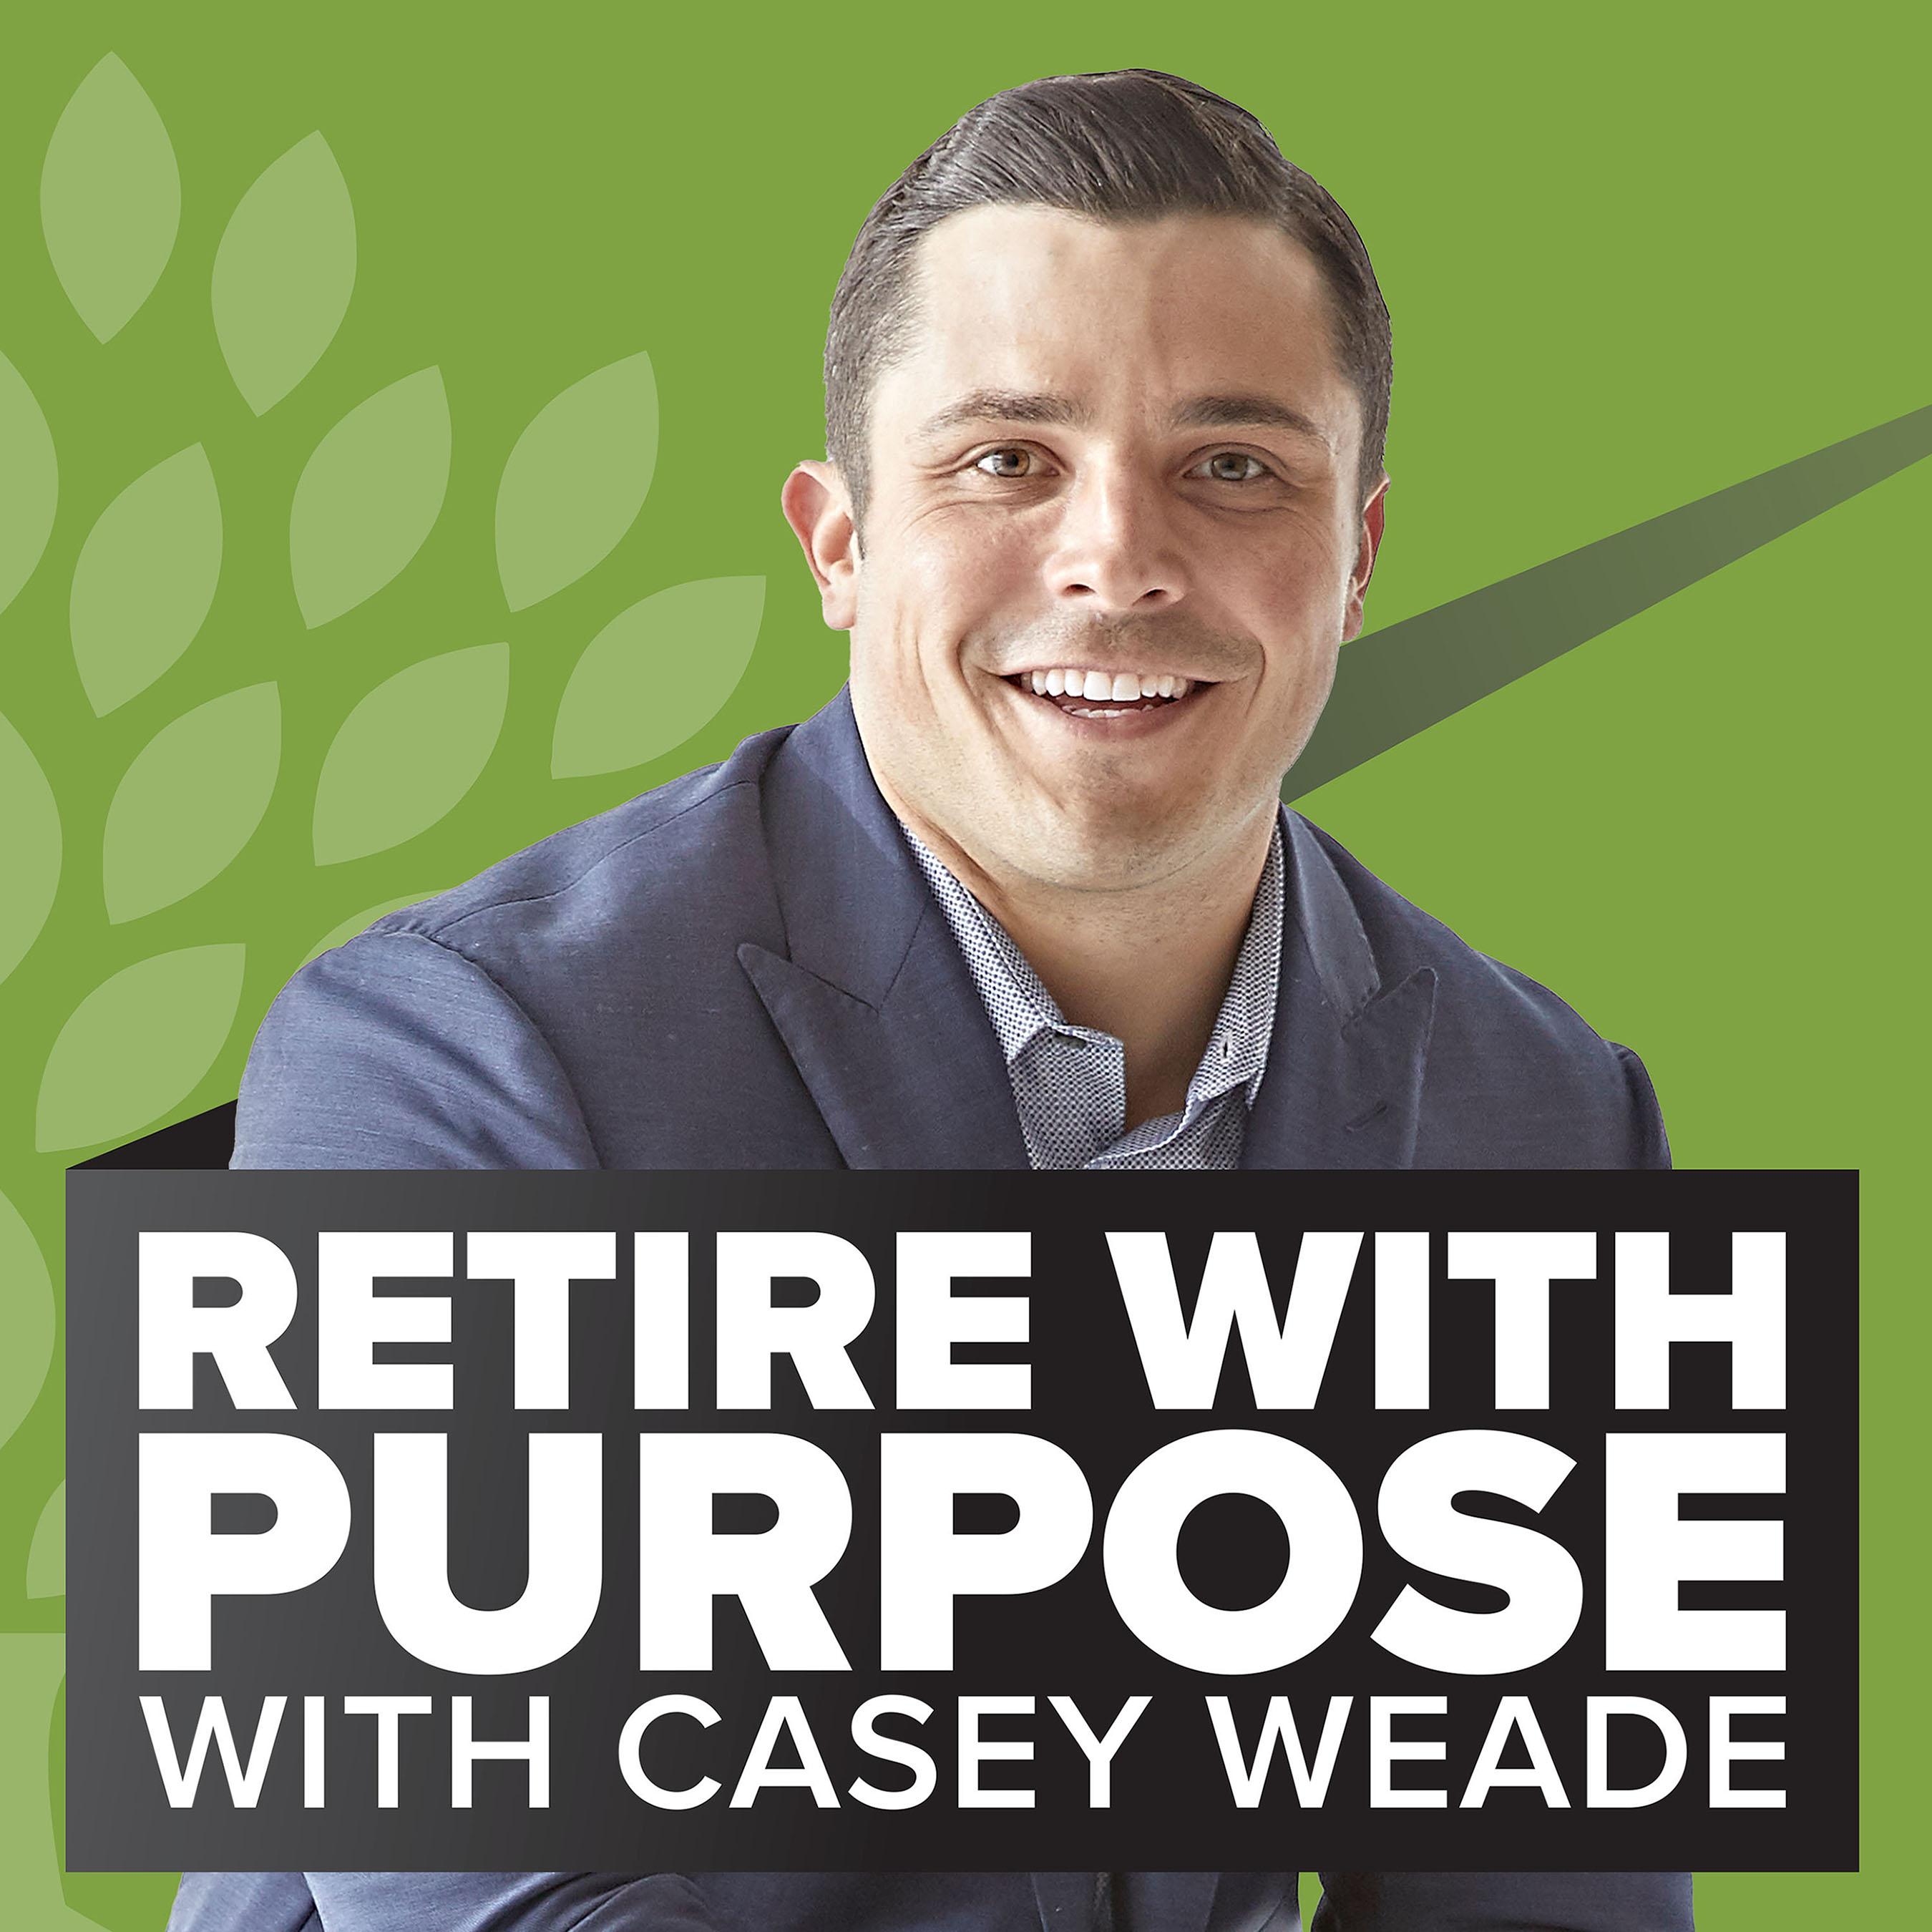 Retire With Purpose - The Retirement Podcast show art